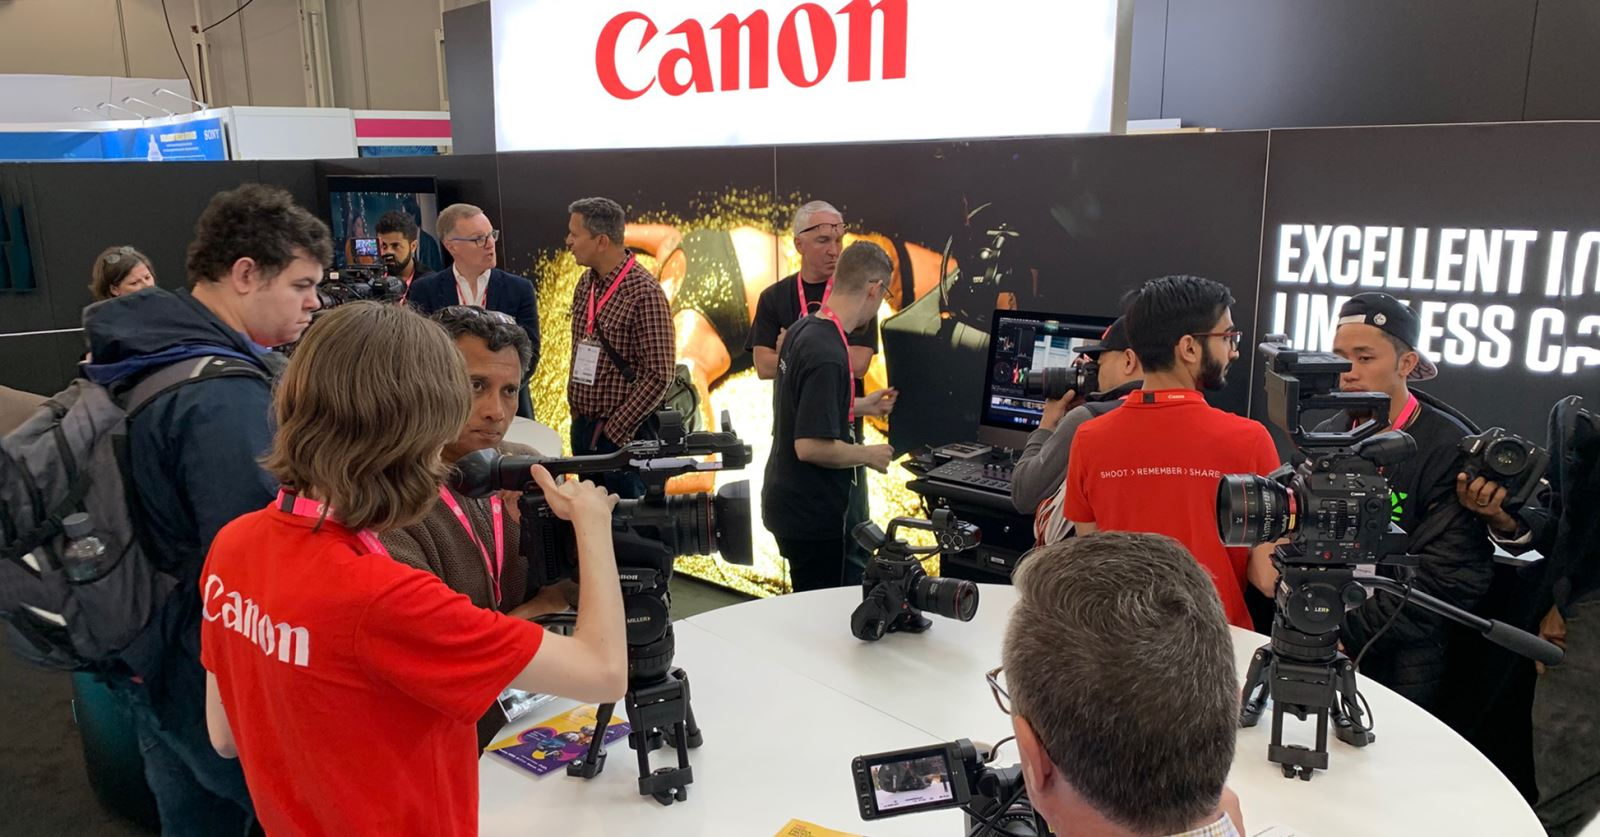 GTC sponsor Canon at the Media Production Show at Olympia – demonstrating all their latest cameras